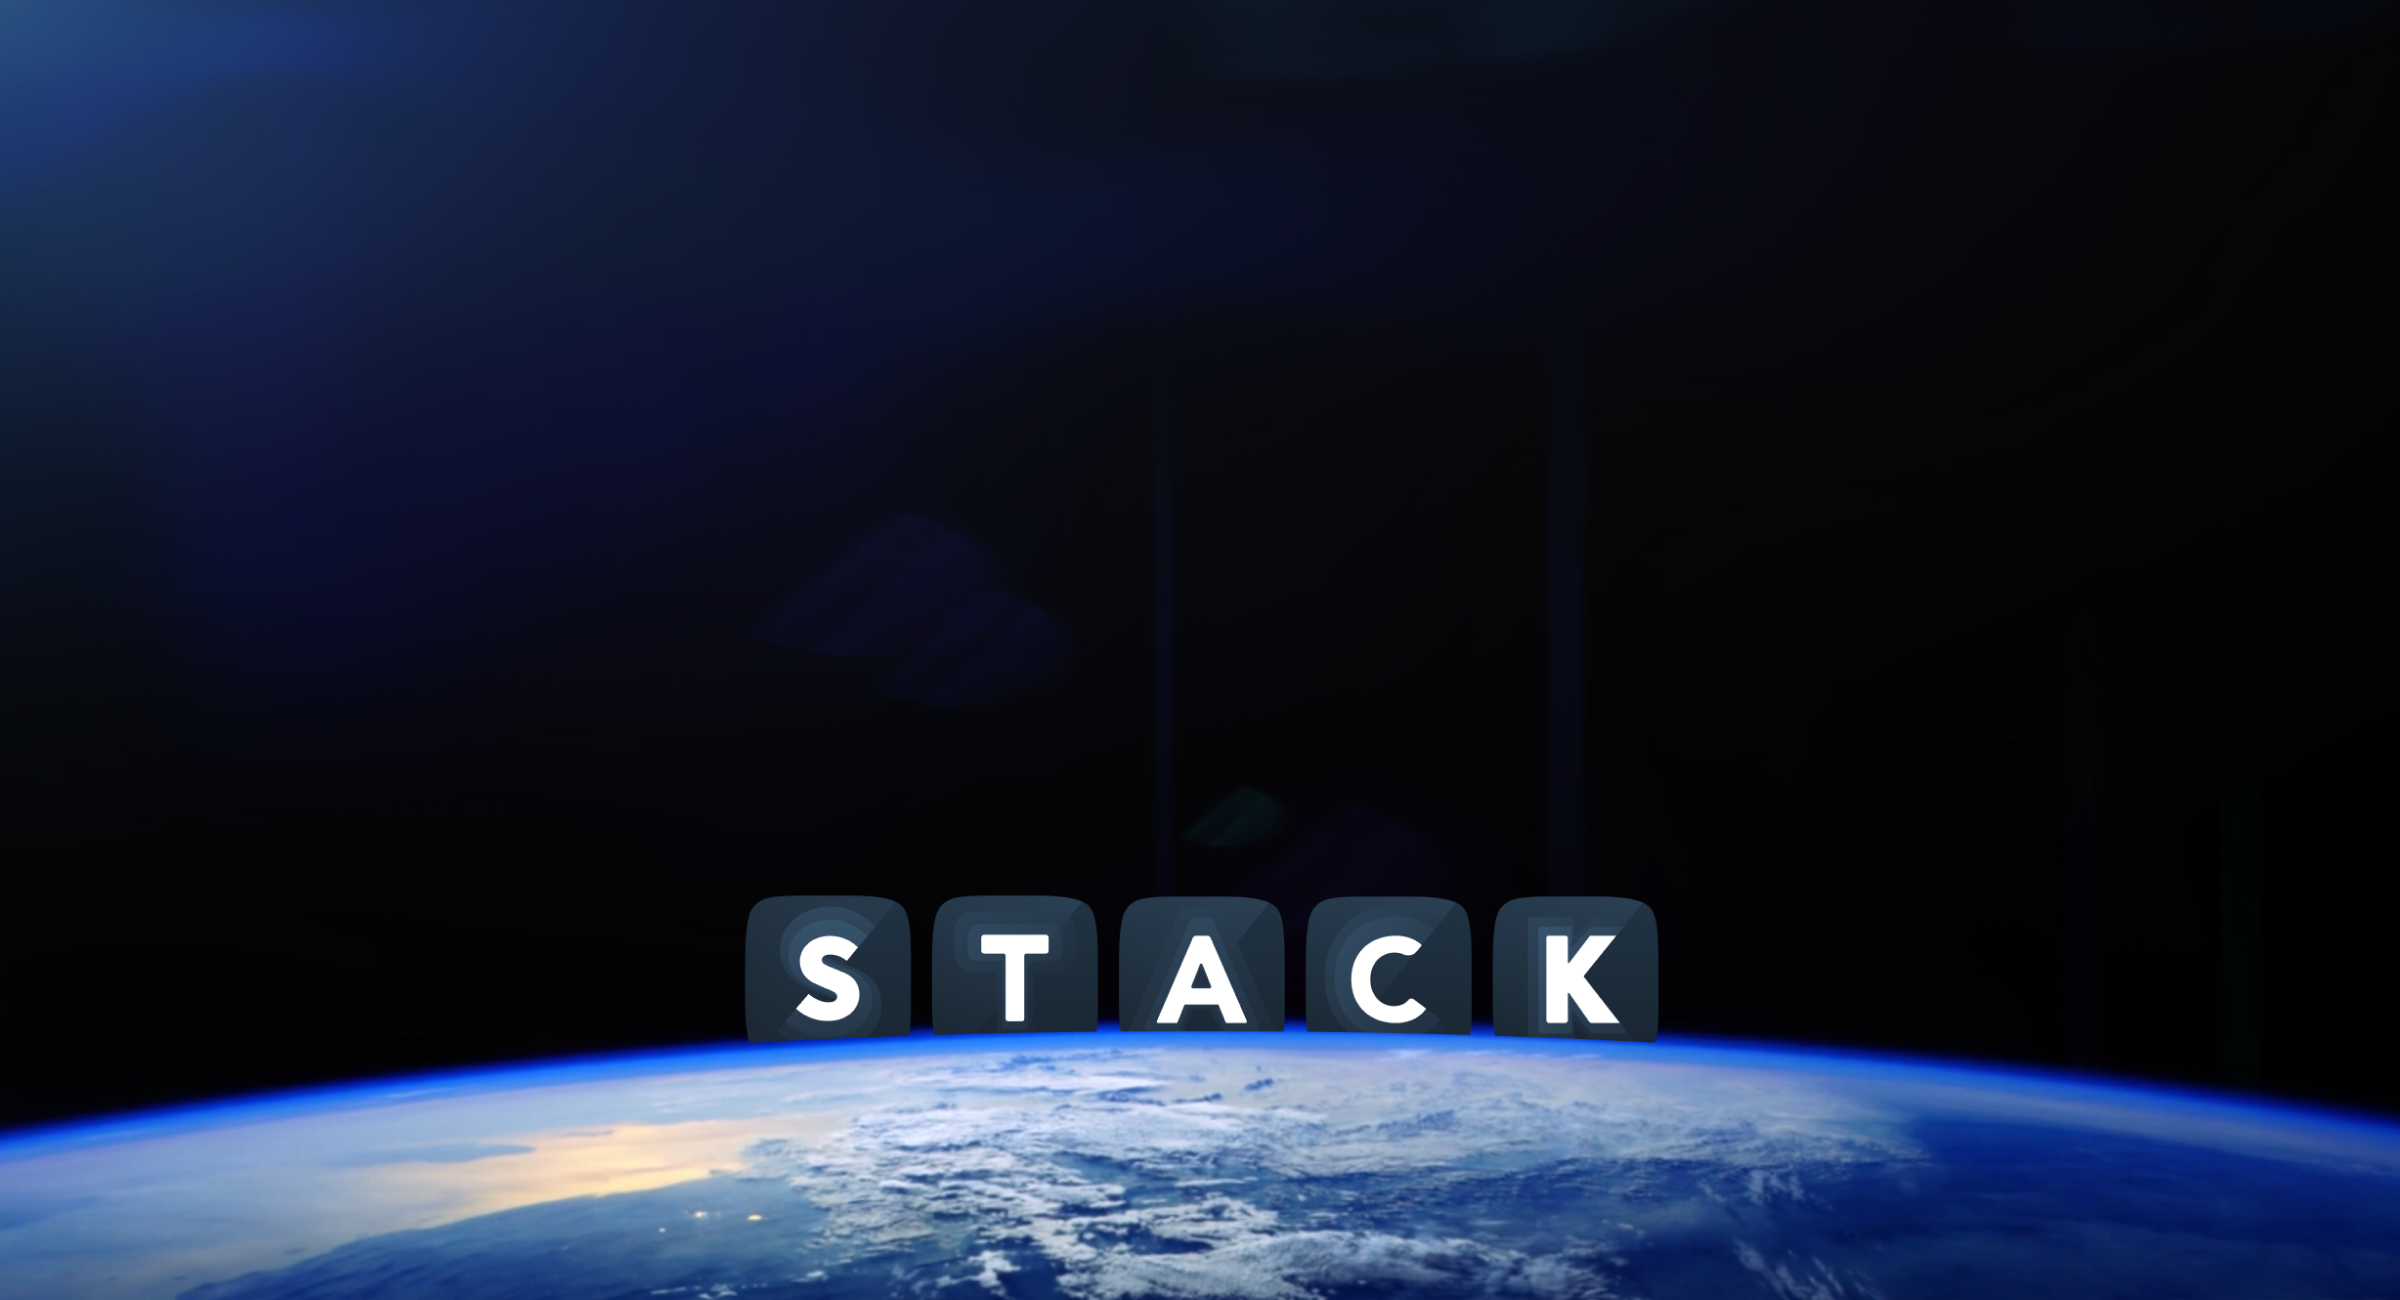 How to use Stack like a TrueStacker